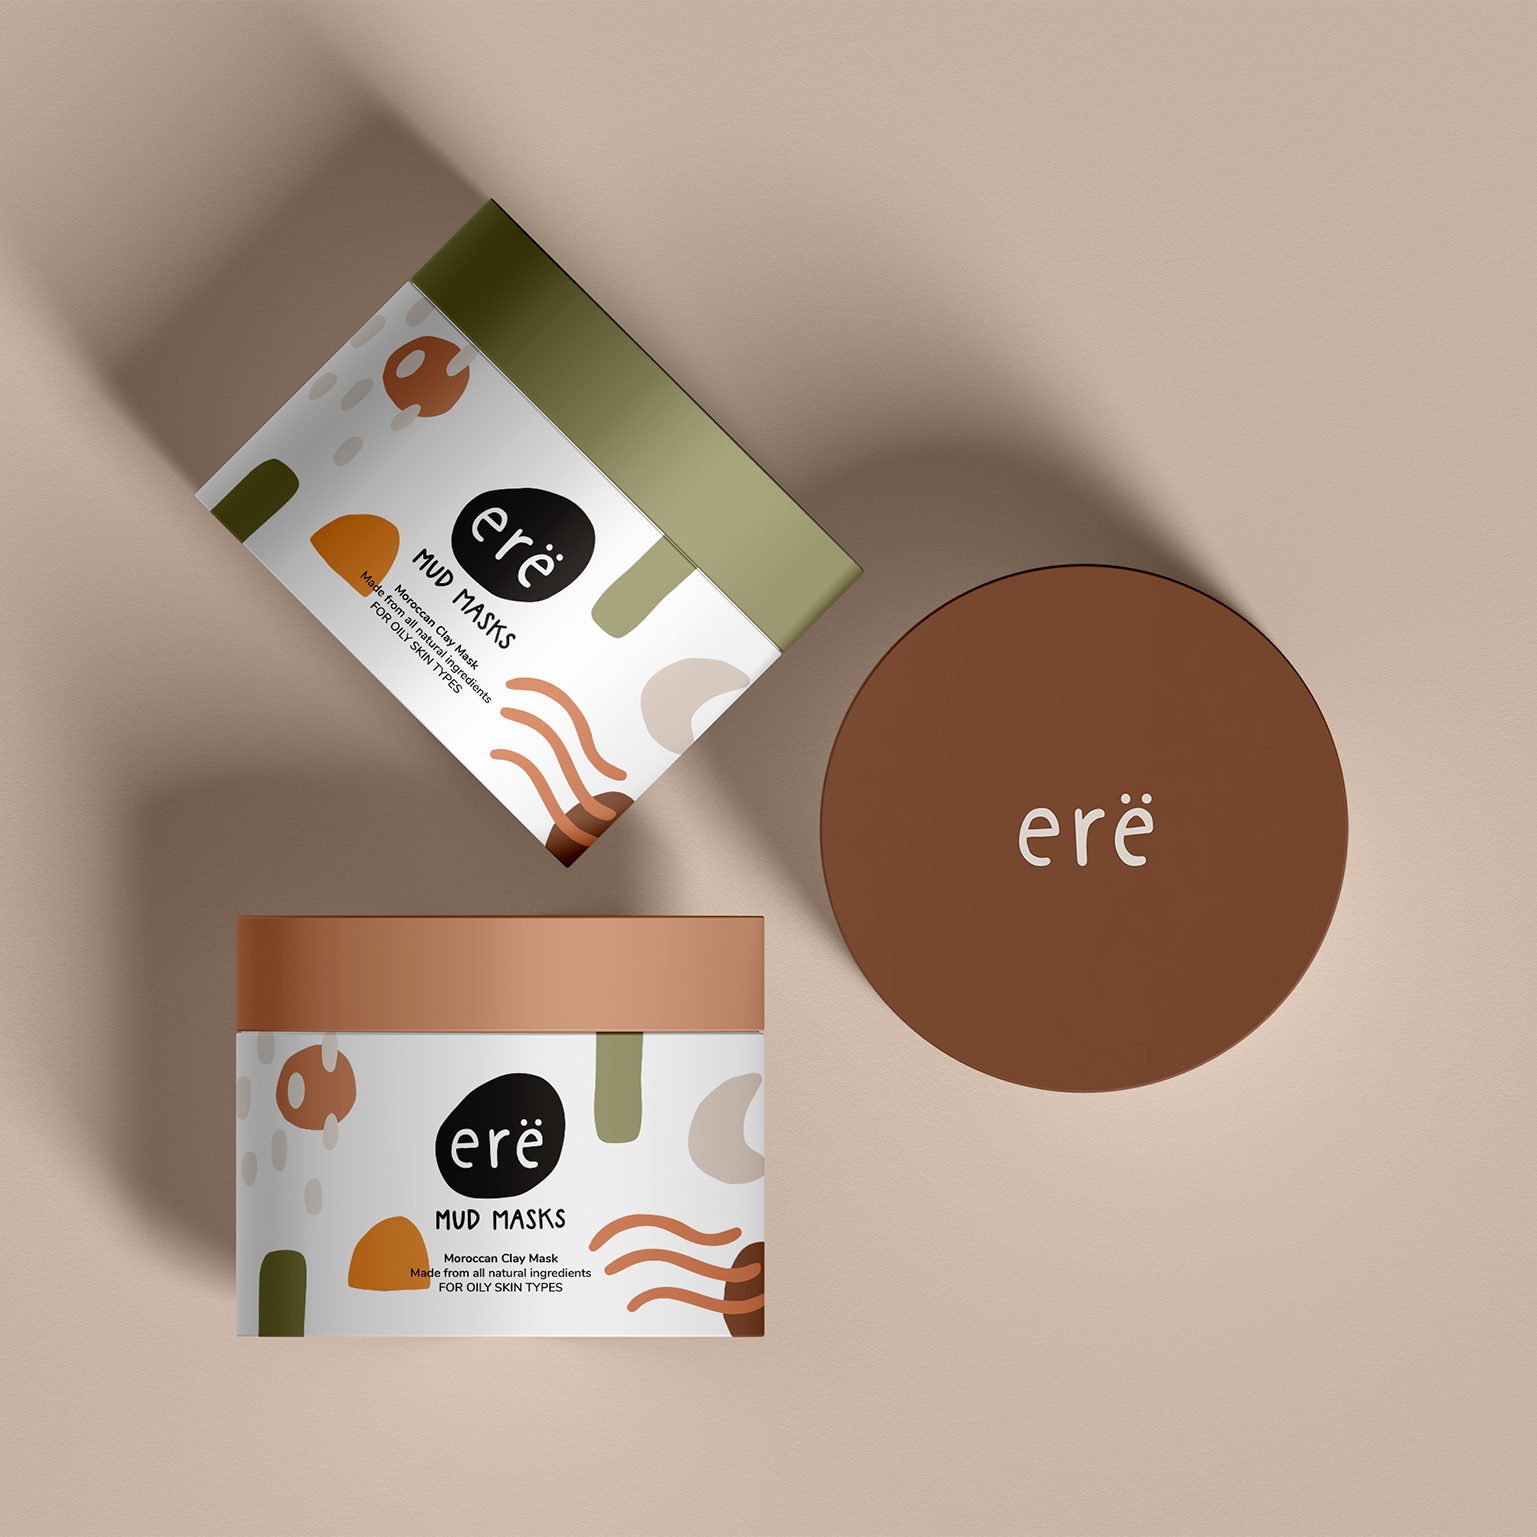 Mockup of cosmetic containers for Ere packaging design